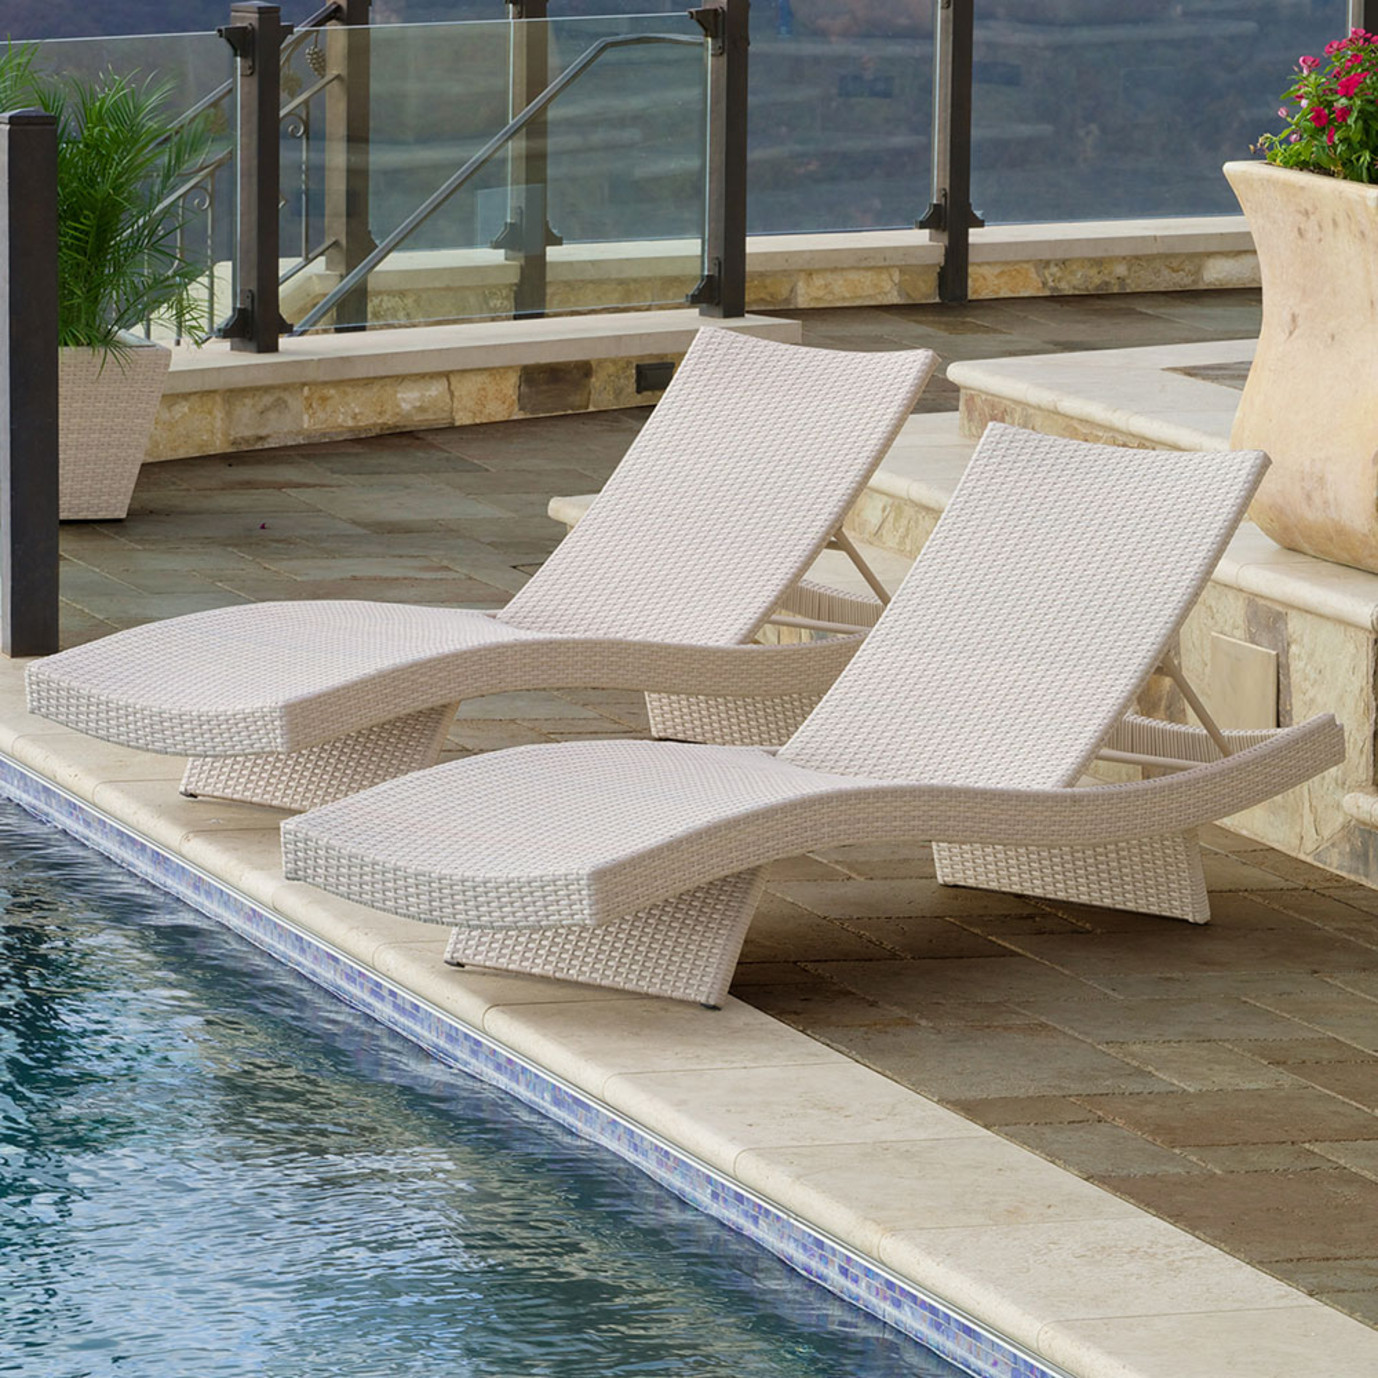 Portofino Comfort Chaise Lounges Chalk Rst Brands